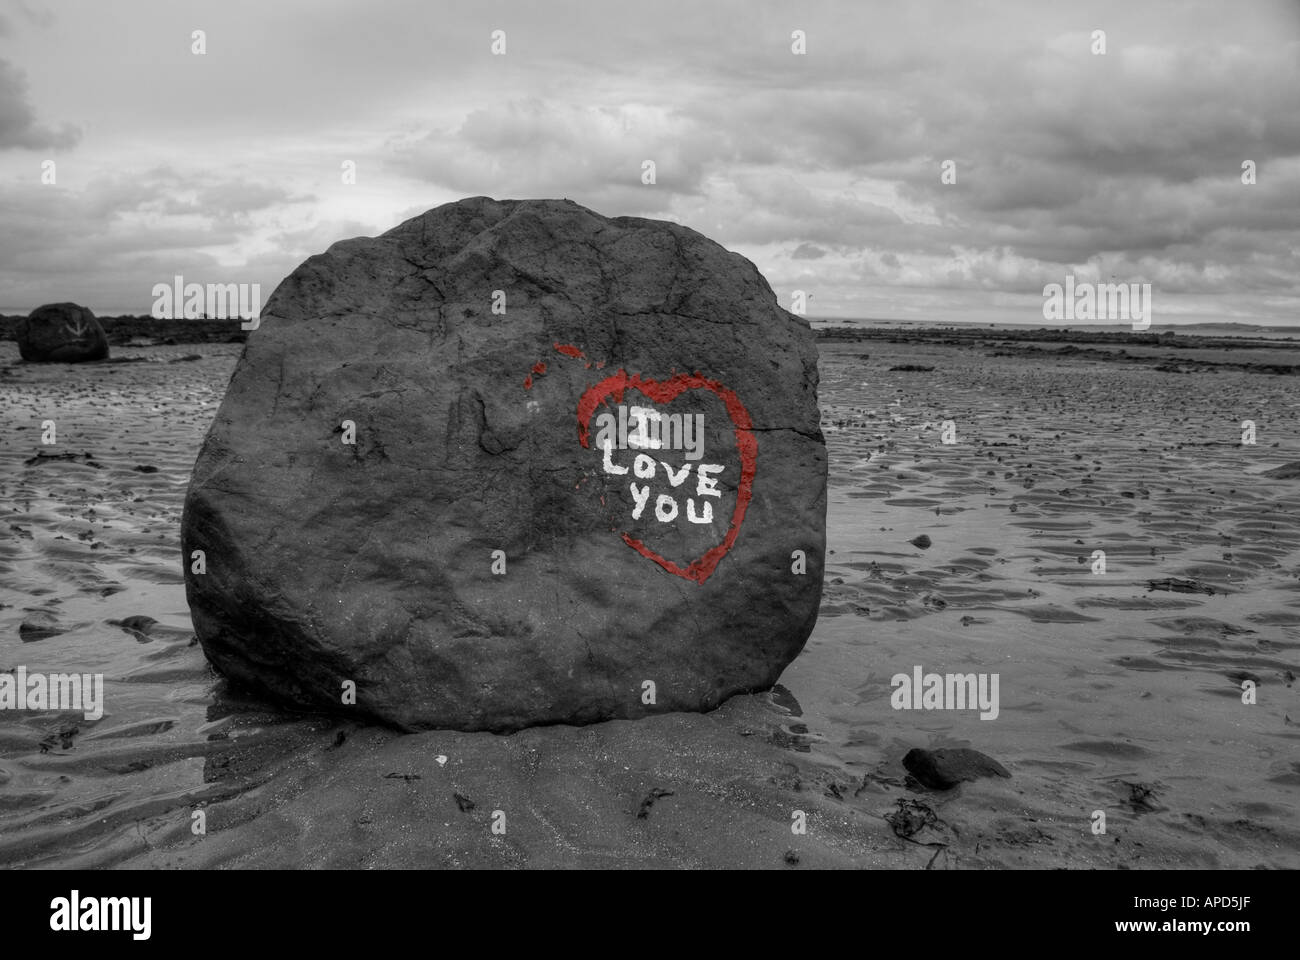 I love you  written on a rock on a beach - Stock Image